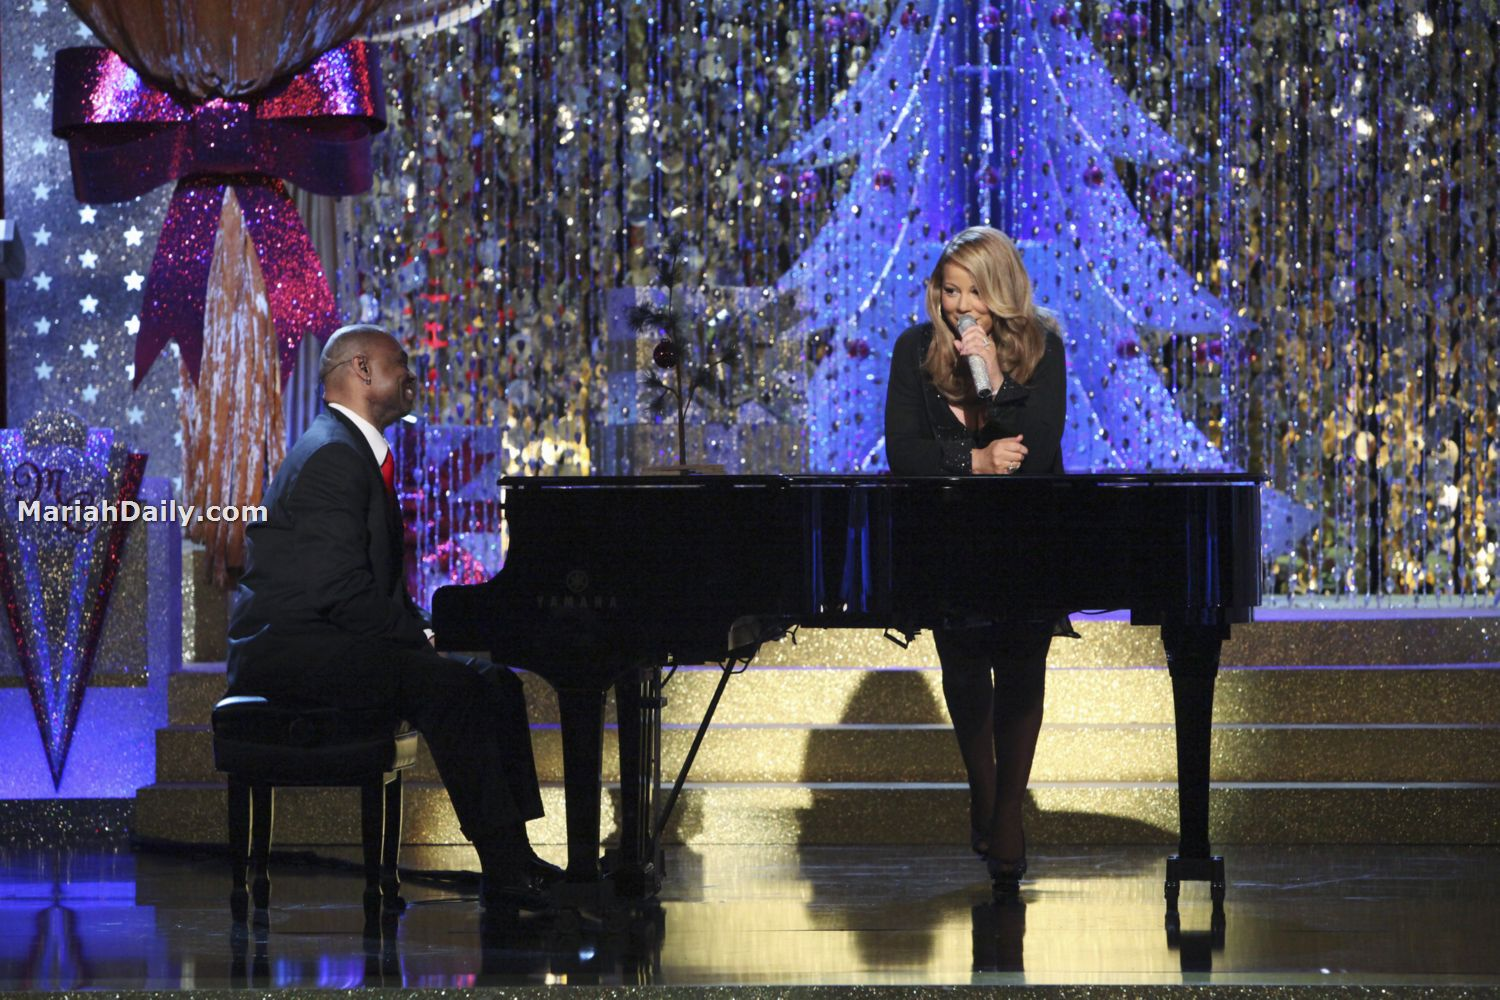 mariah9 Hot Shots: Mariah Carey Dazzles In Christmas Special